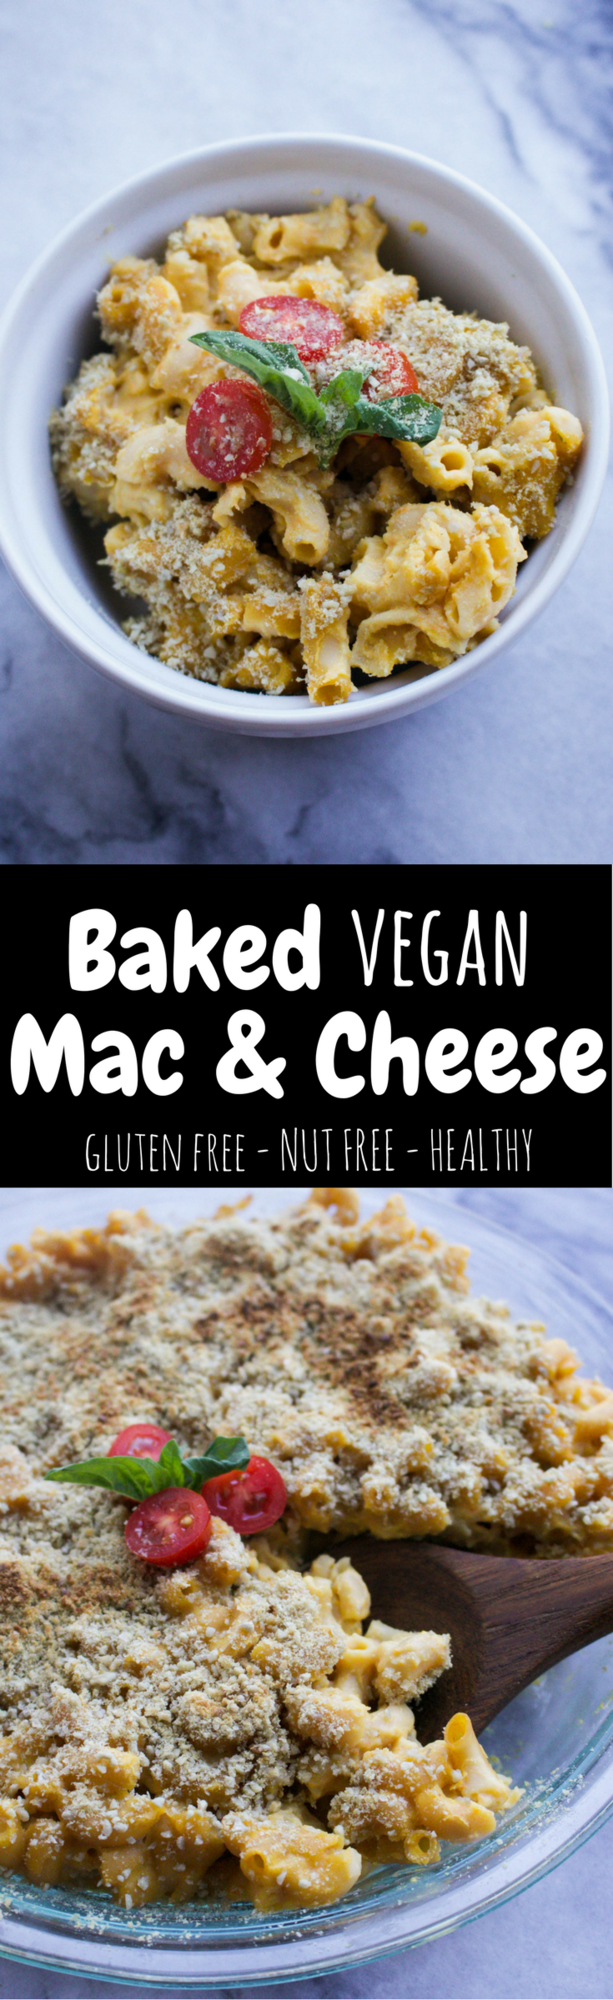 Baked Vegan Mac and Cheese (Gluten Free, Nut Free) - From My Bowl